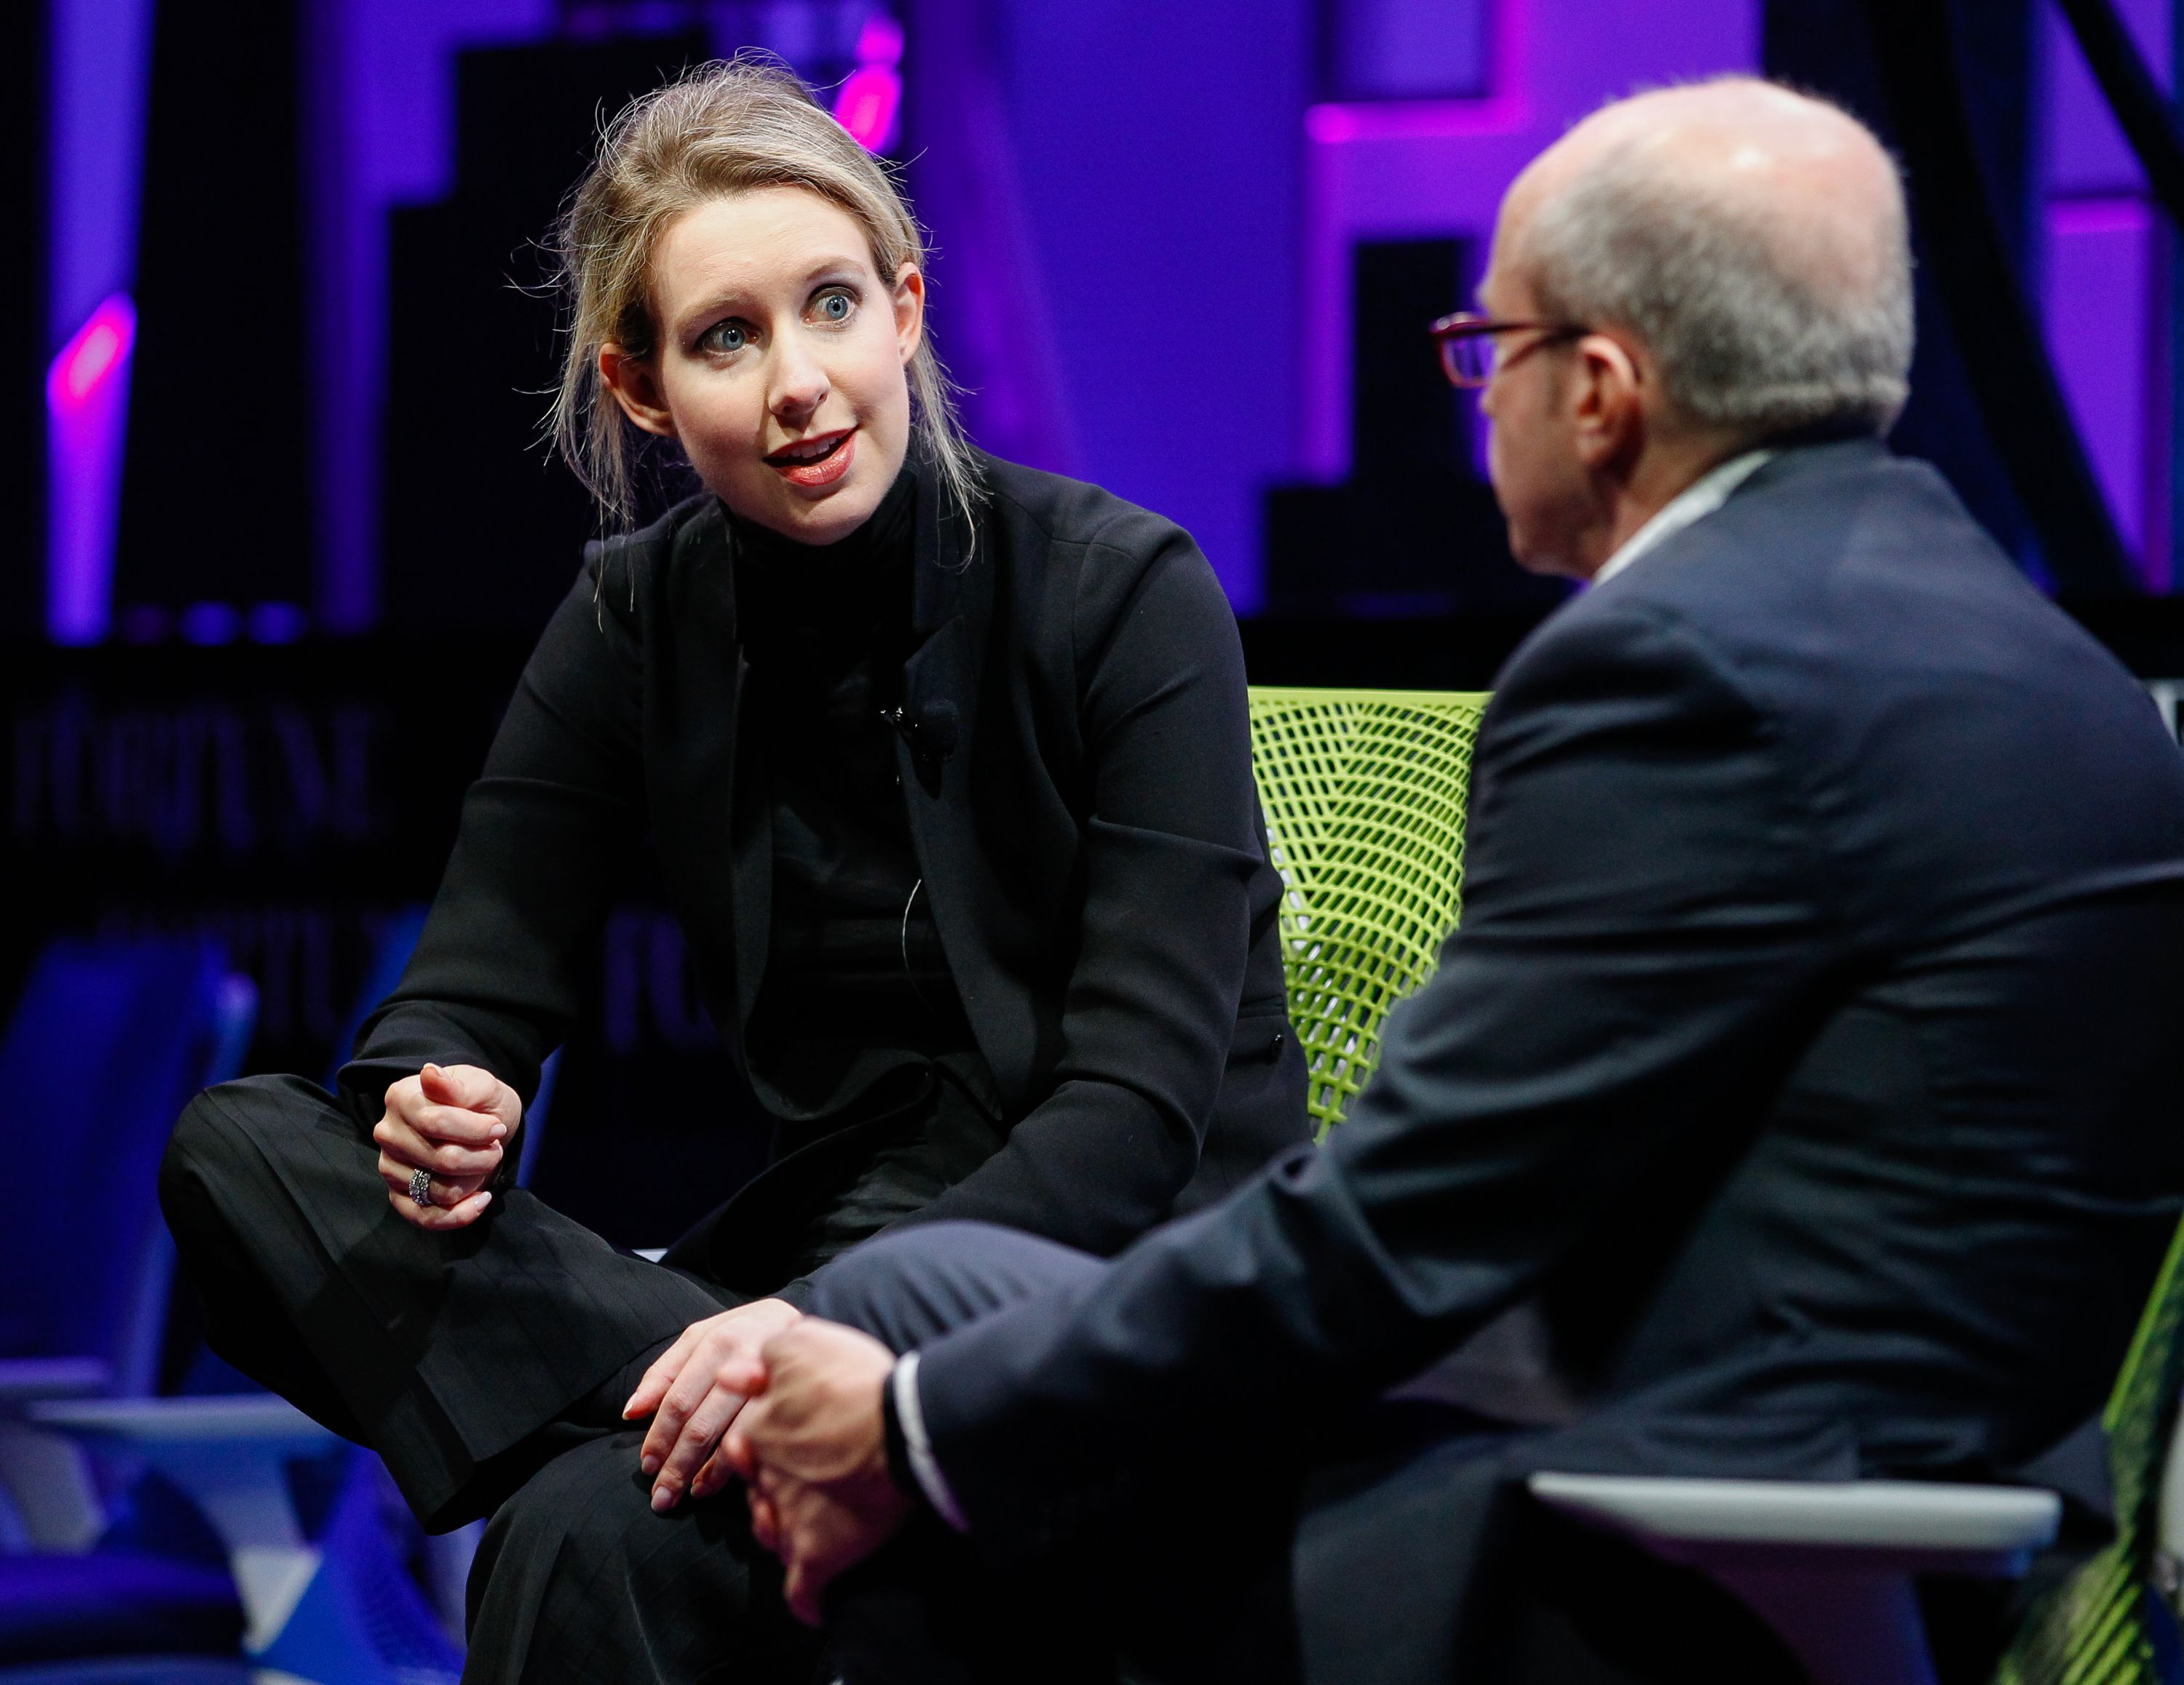 Elizabeth Holmes Faces Criminal Charges, But She Insists She's Not Guilty